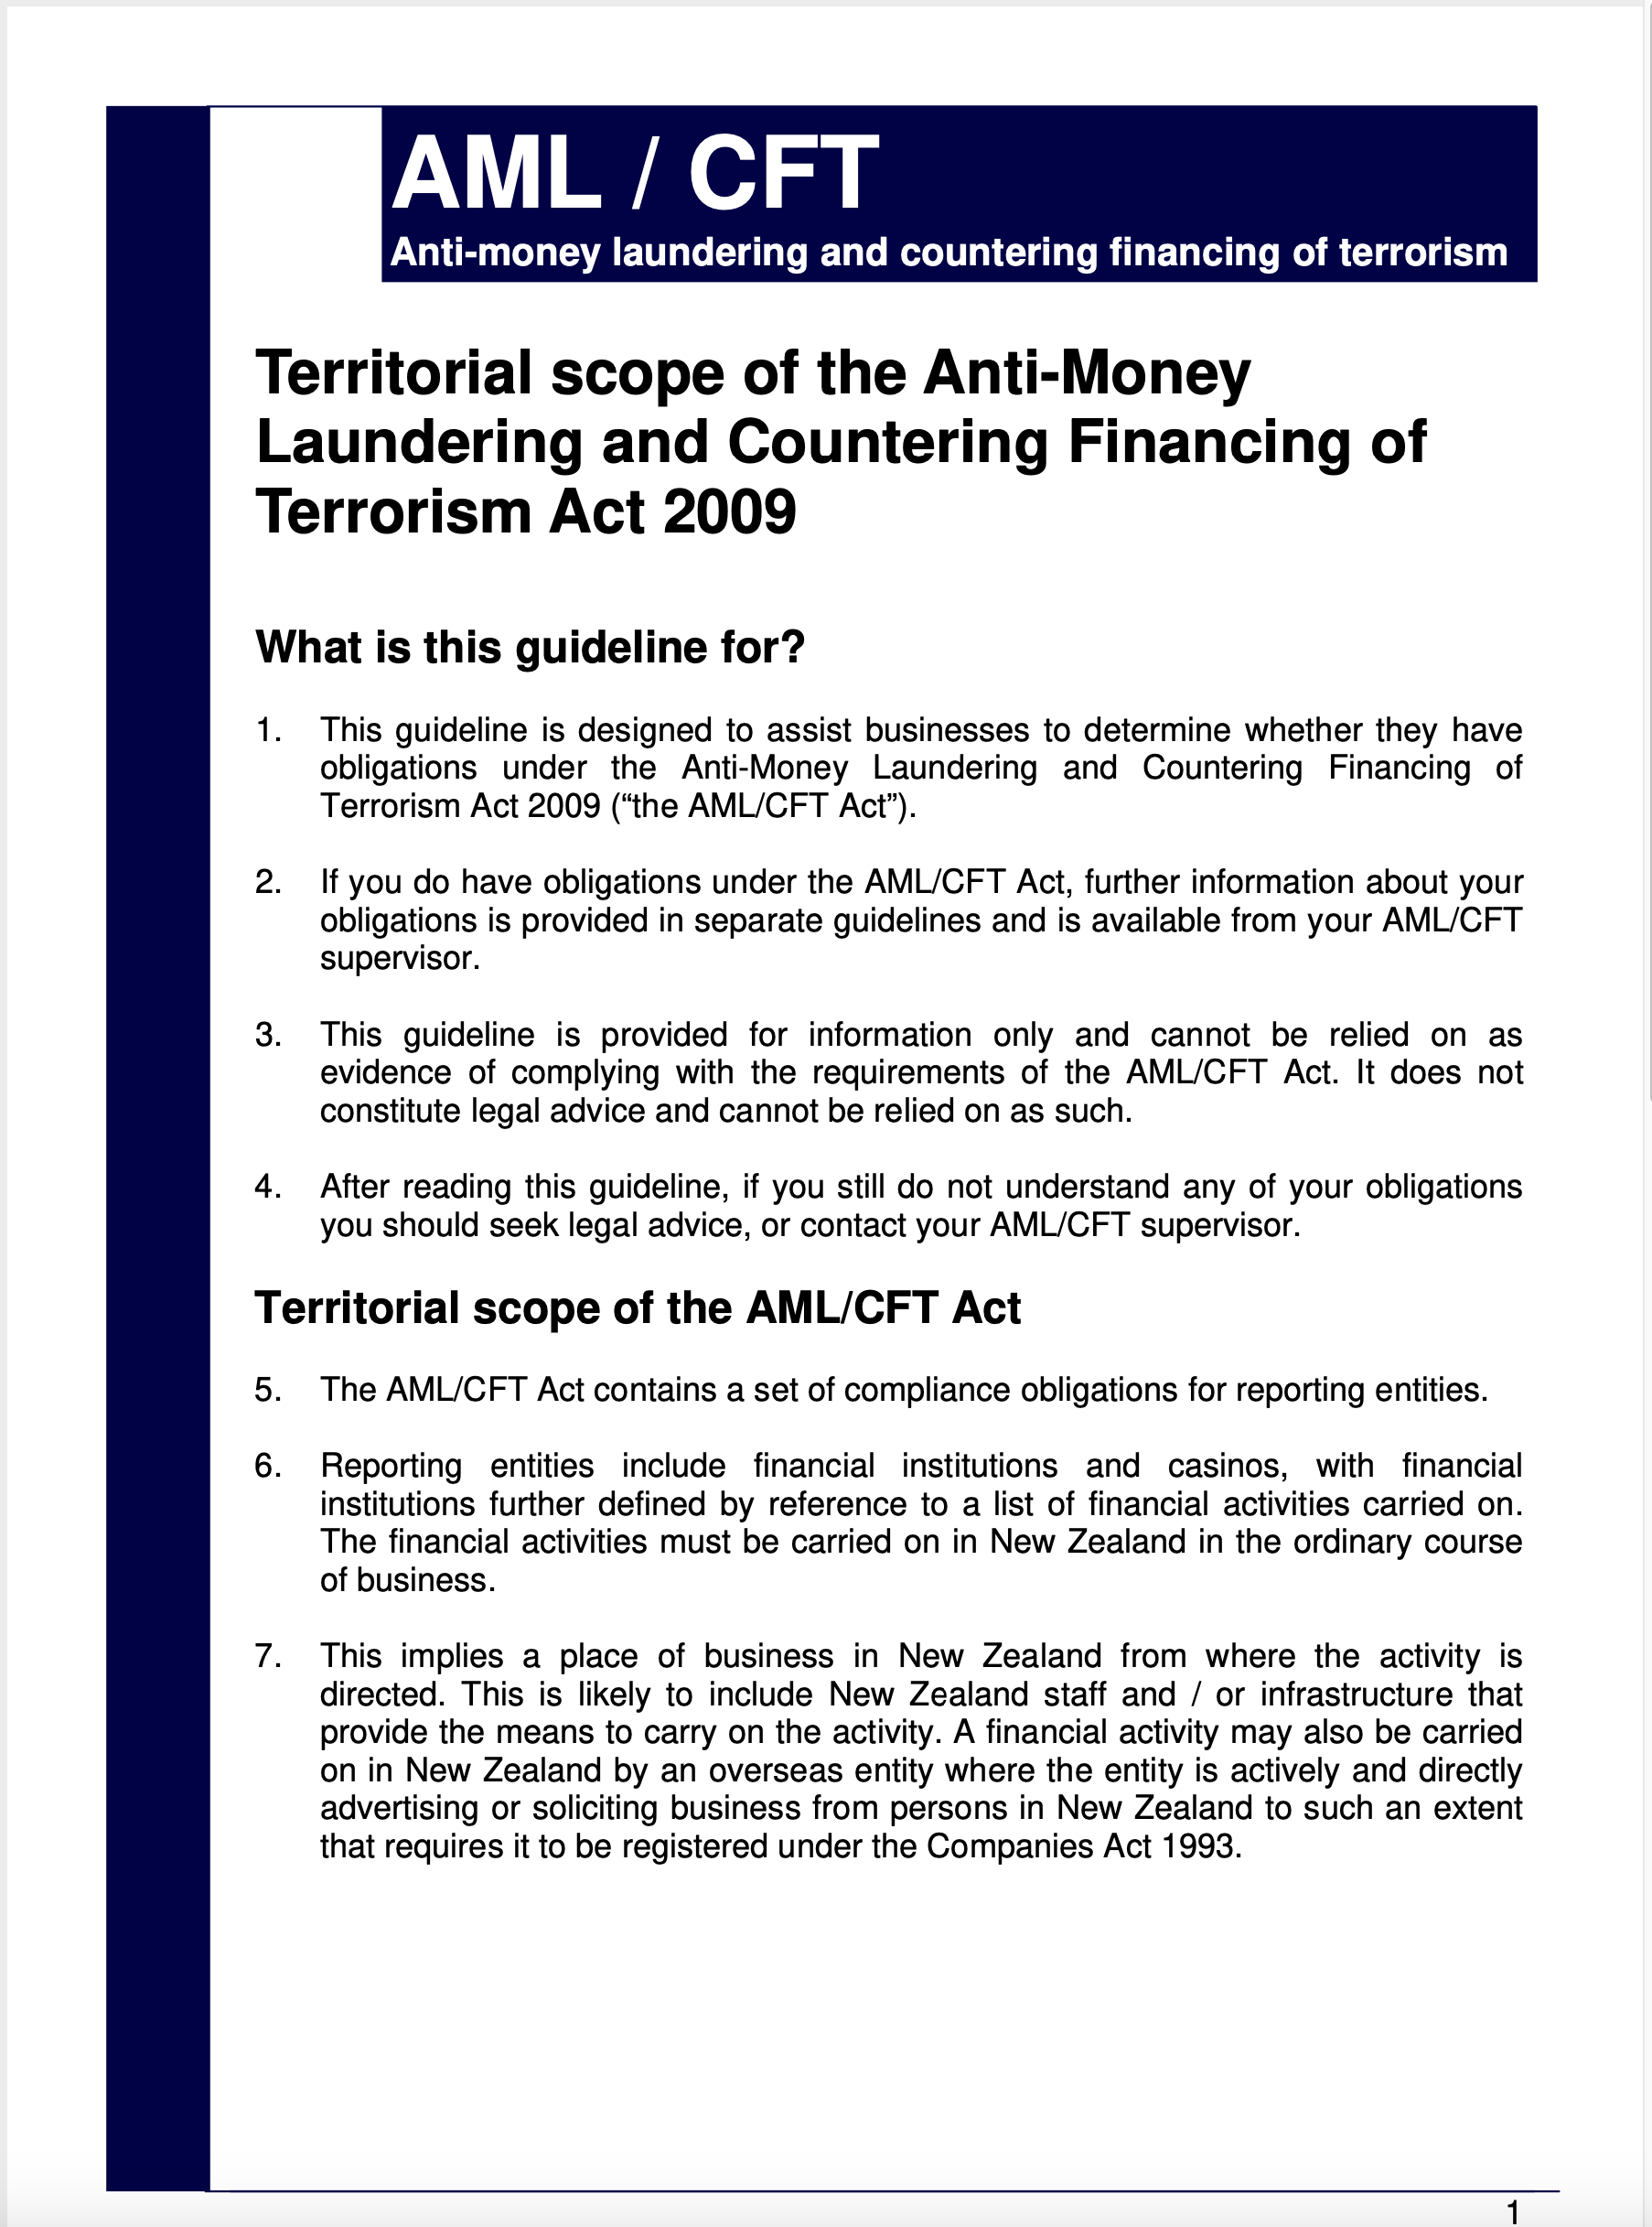 AML/CFT Act Territorial Scope